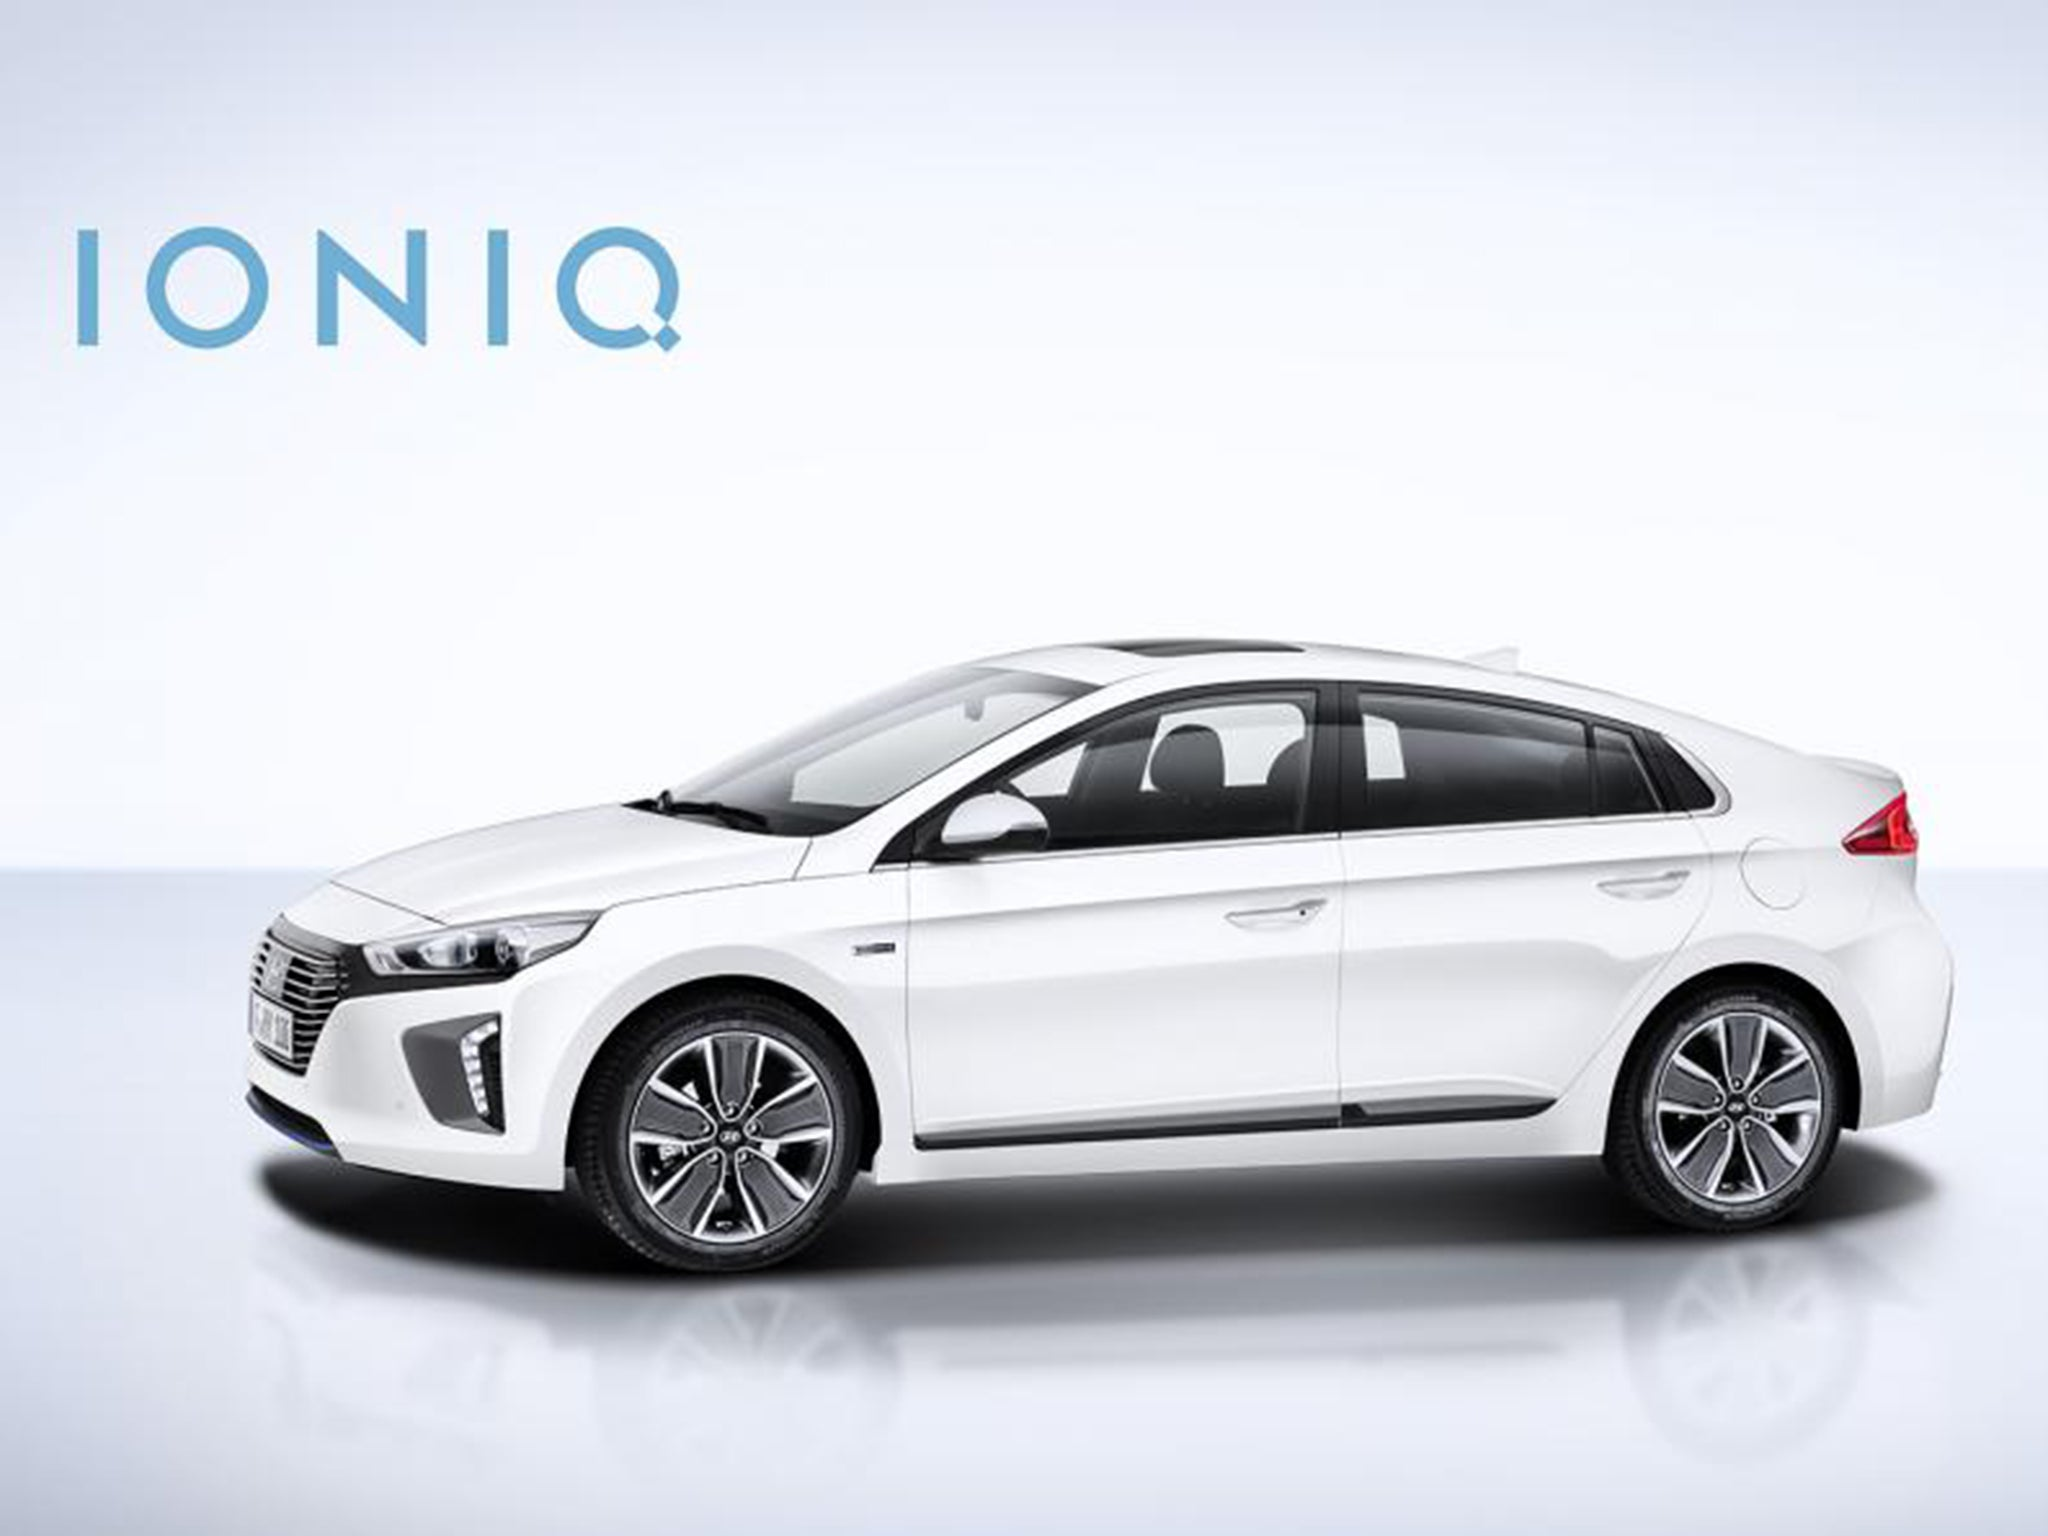 Hyundai Ioniq To Have Three Electric Options Within Single Body Motoring News Lifestyle